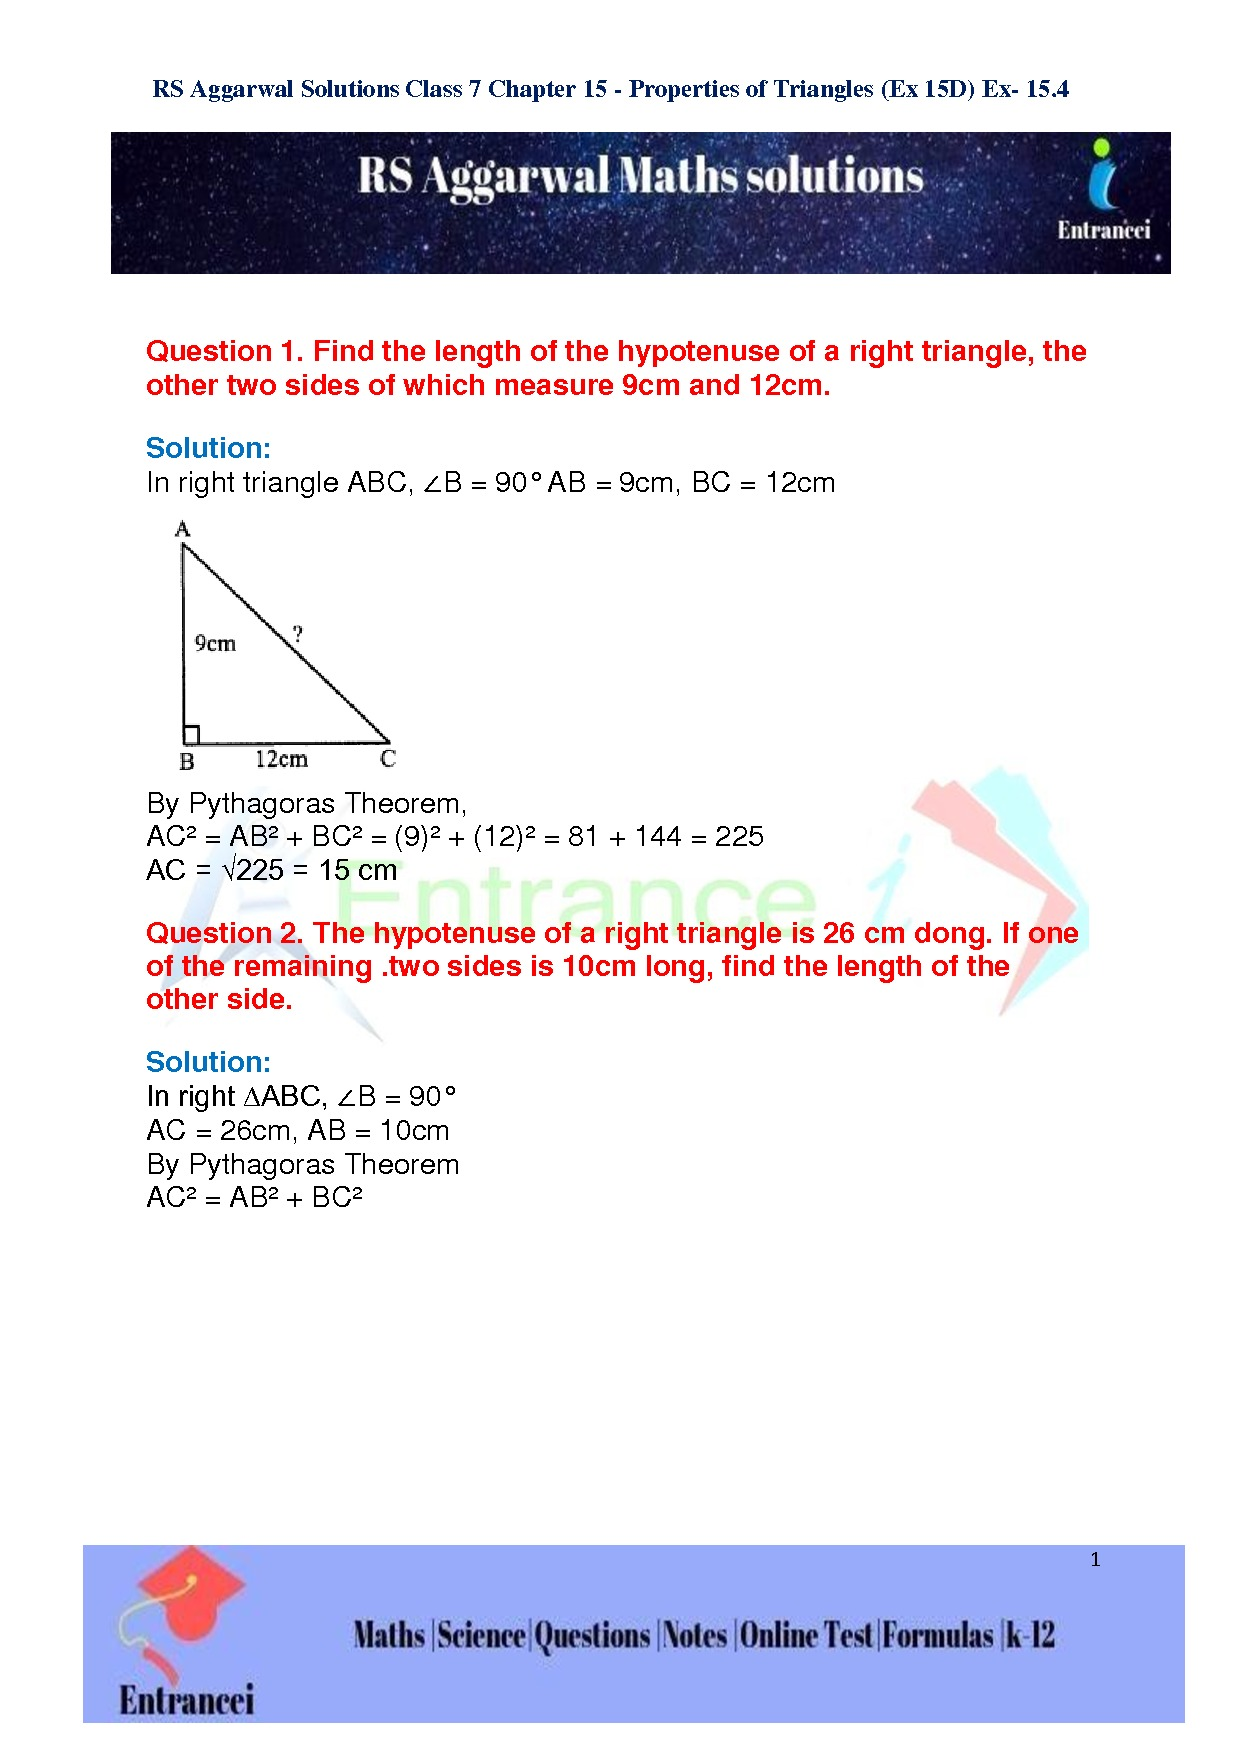 RS Aggarwal Class 7 Maths Solutions of Chapter-15 Properties